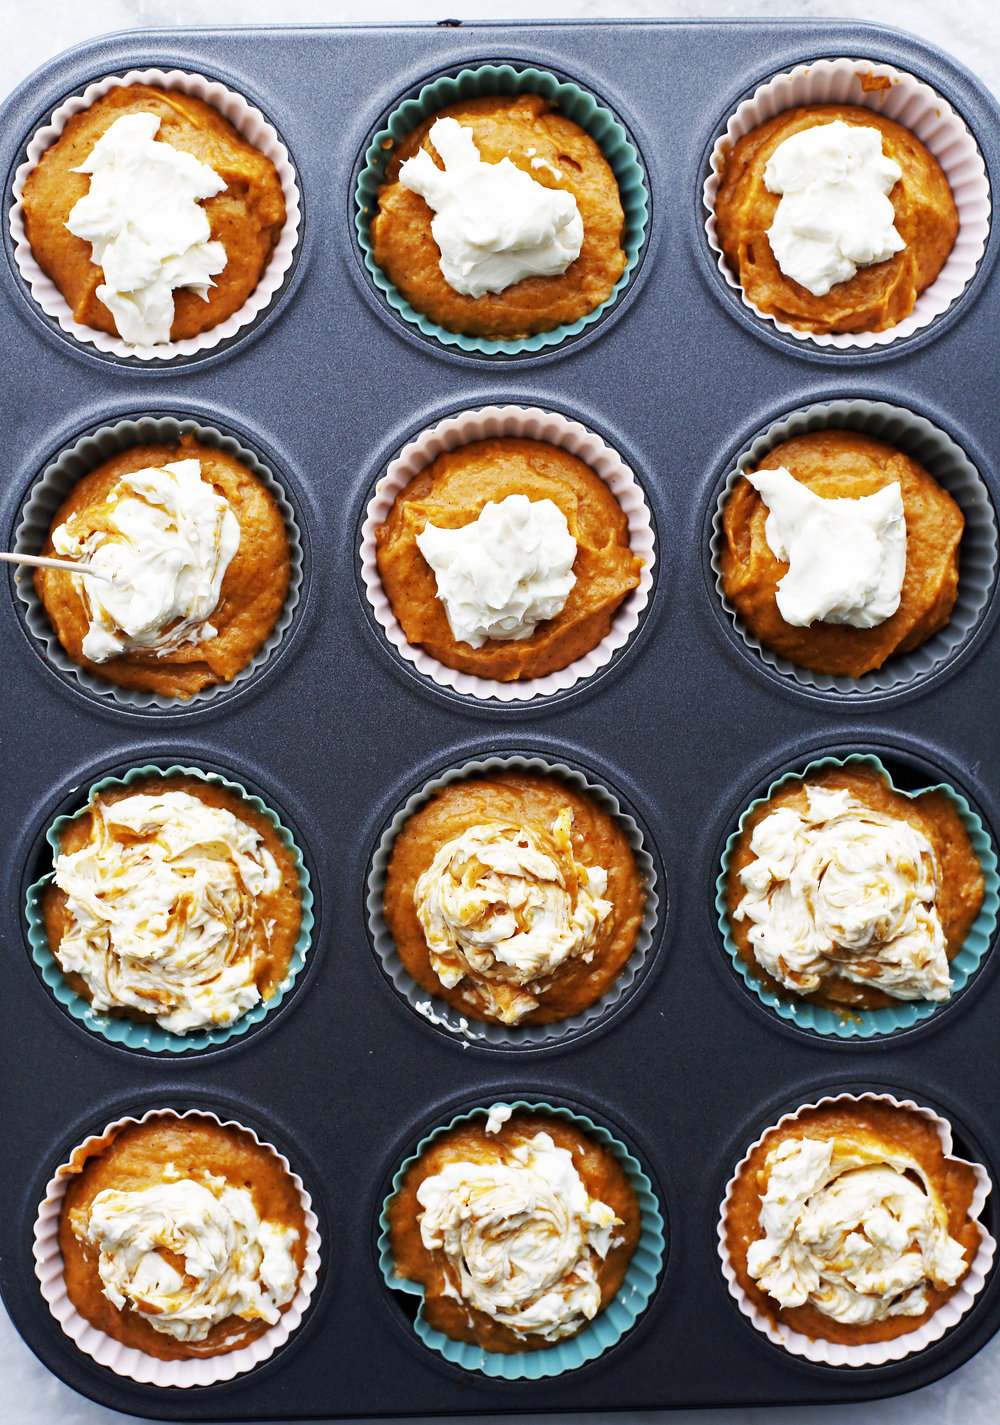 Twelve unbaked pumpkin cream cheese muffins in a muffin pan.